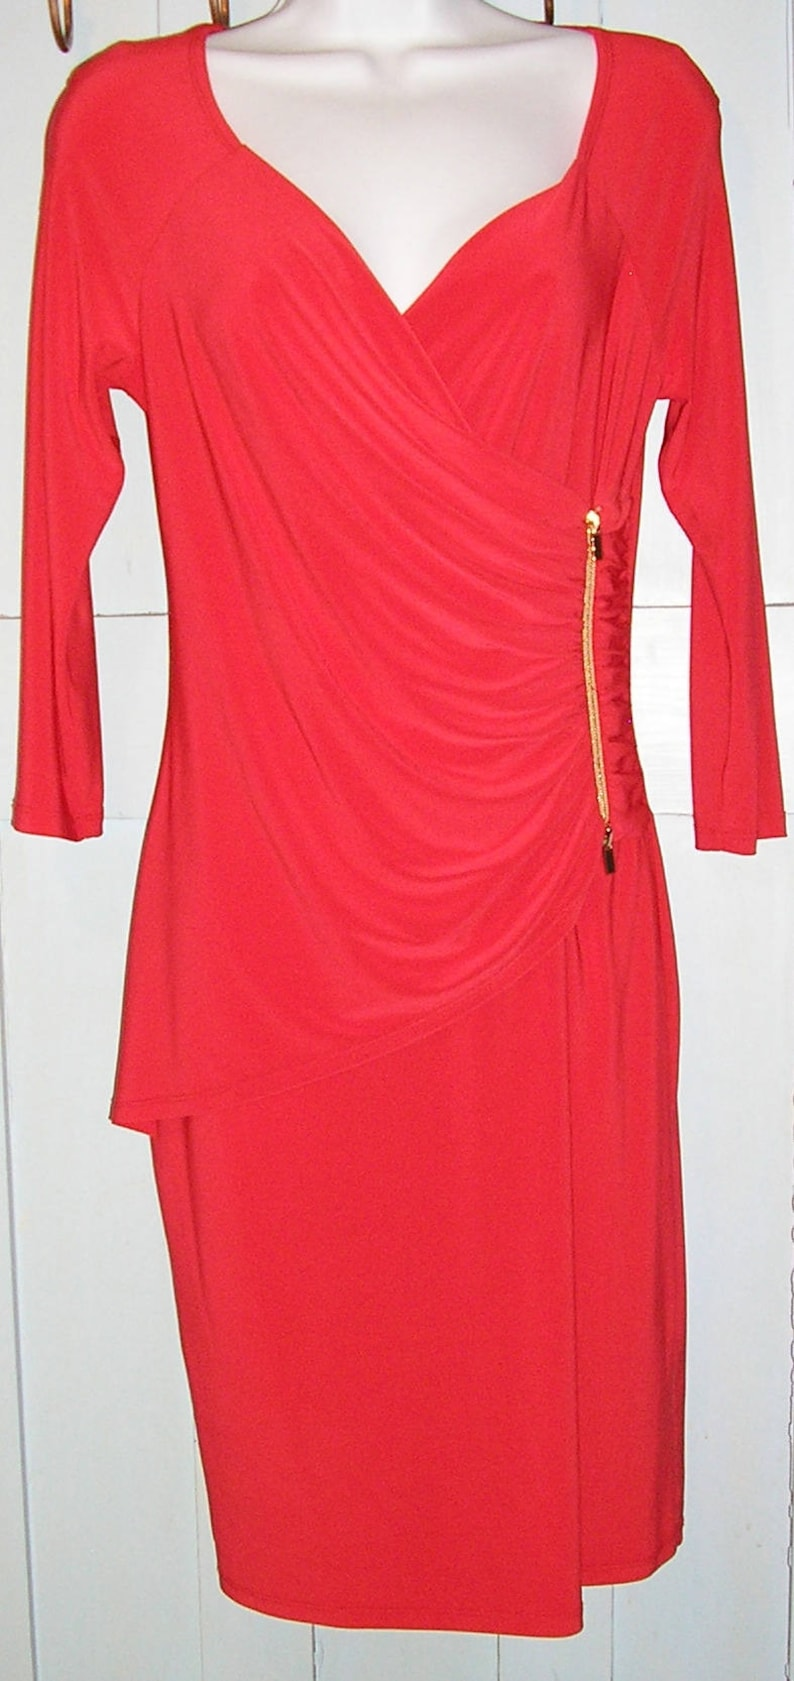 cocktail dress Joseph Ribkoff plunge front red size 8 Vintage 90s draped Made in Canada